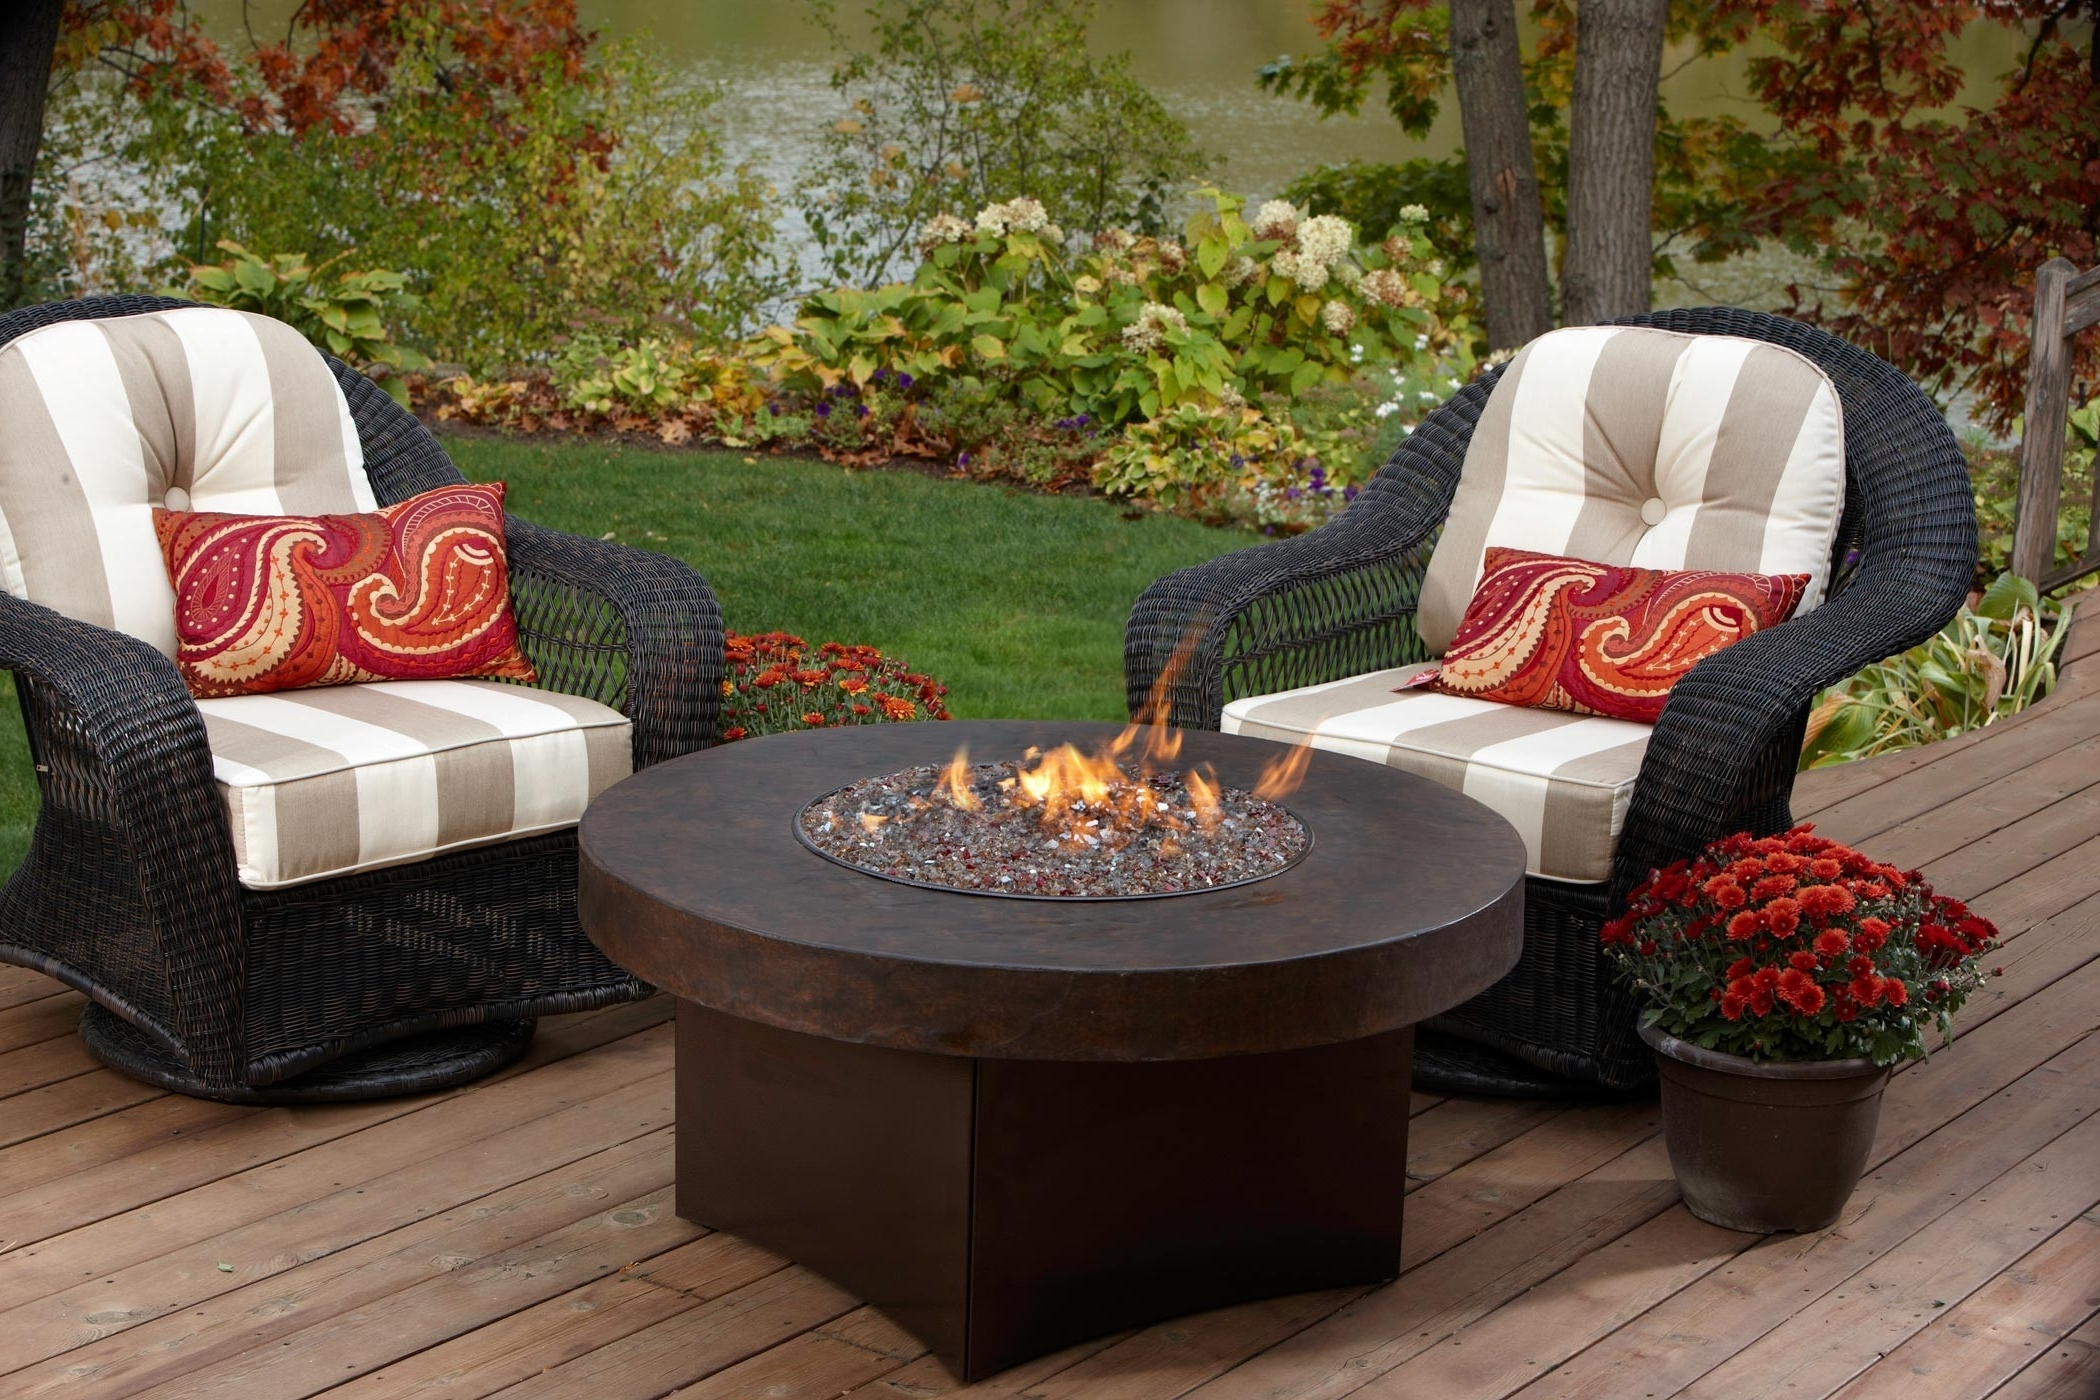 Patio Conversation Sets With Propane Fire Pit For Most Current Fundamentals Patio Table With Gas Fire Pit Give The Warmth In (View 12 of 20)